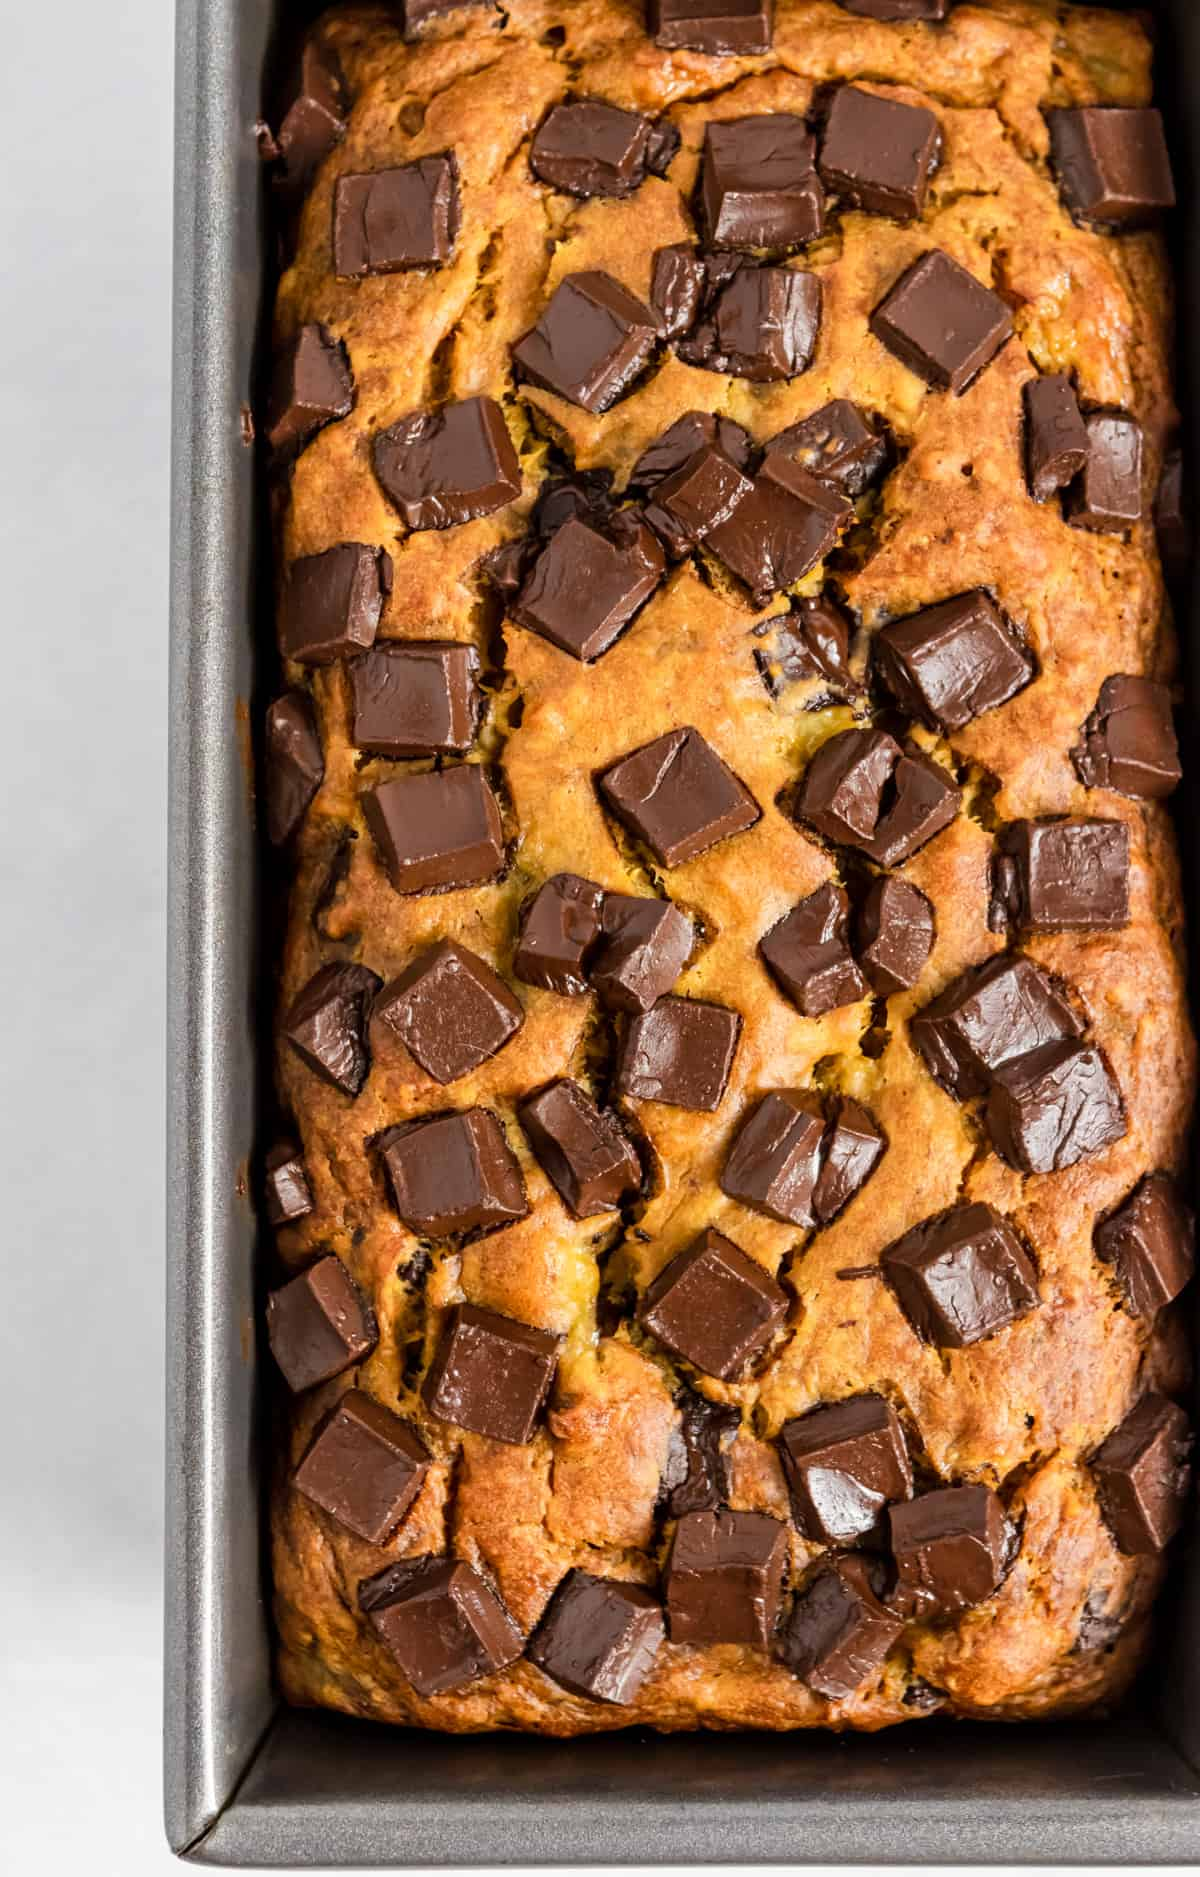 Loaf of banana bread with chocolate chips.